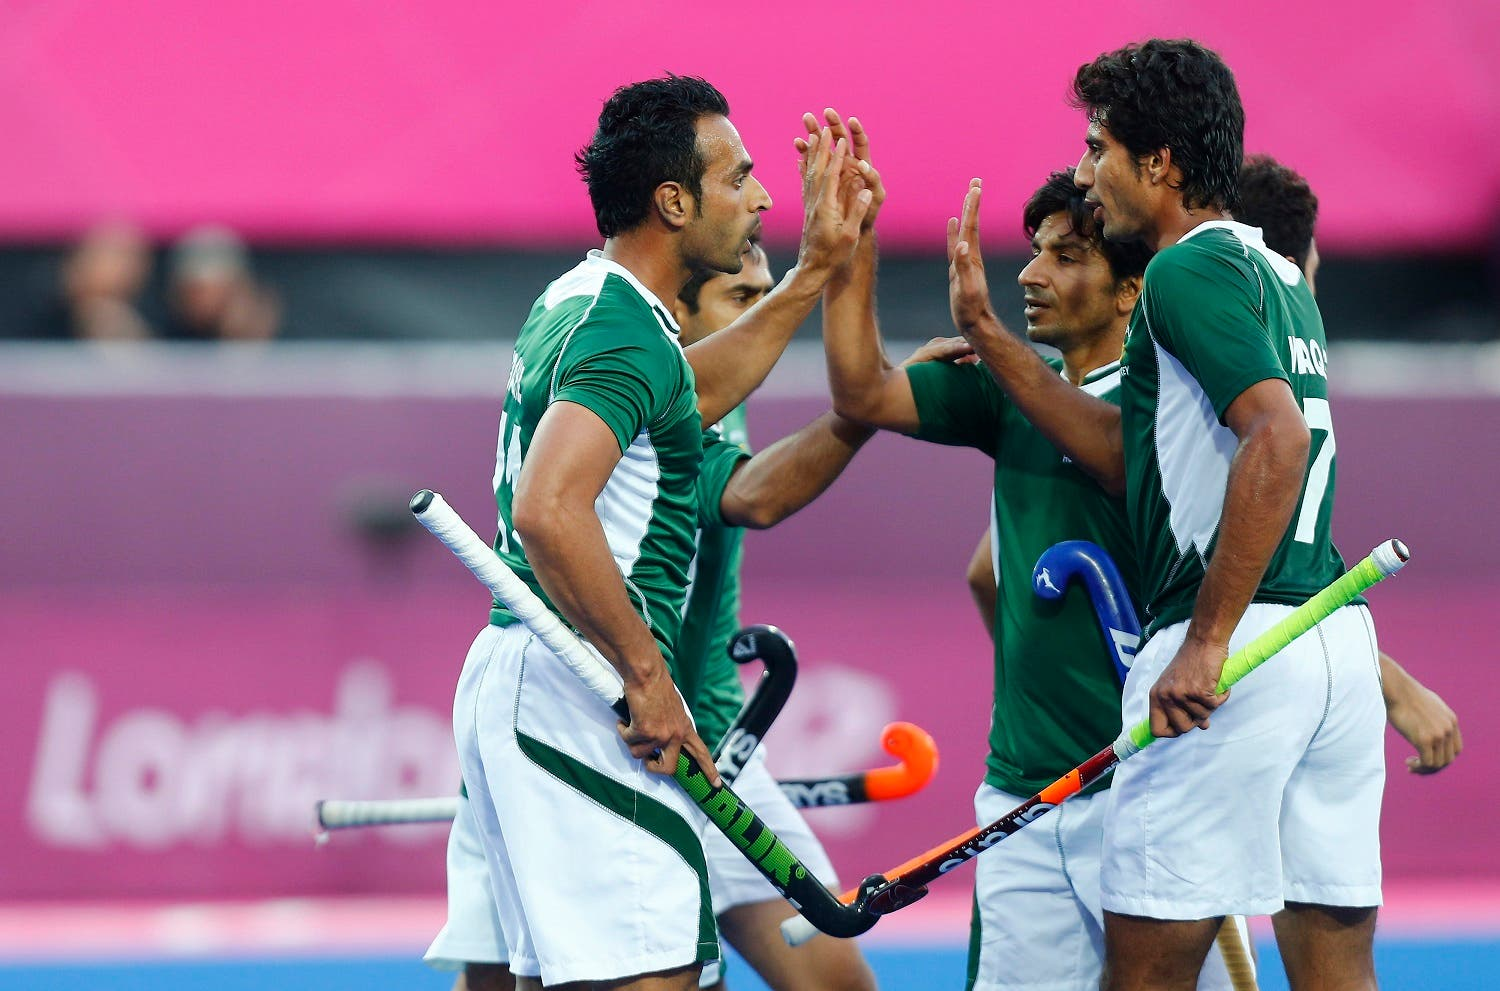 Pakistan's players celebrate their goal against Argentina during their men's Group A hockey match at the London 2012 Olympic Games at the Riverbank Arena on the Olympic Park August 1, 2012. REUTERS